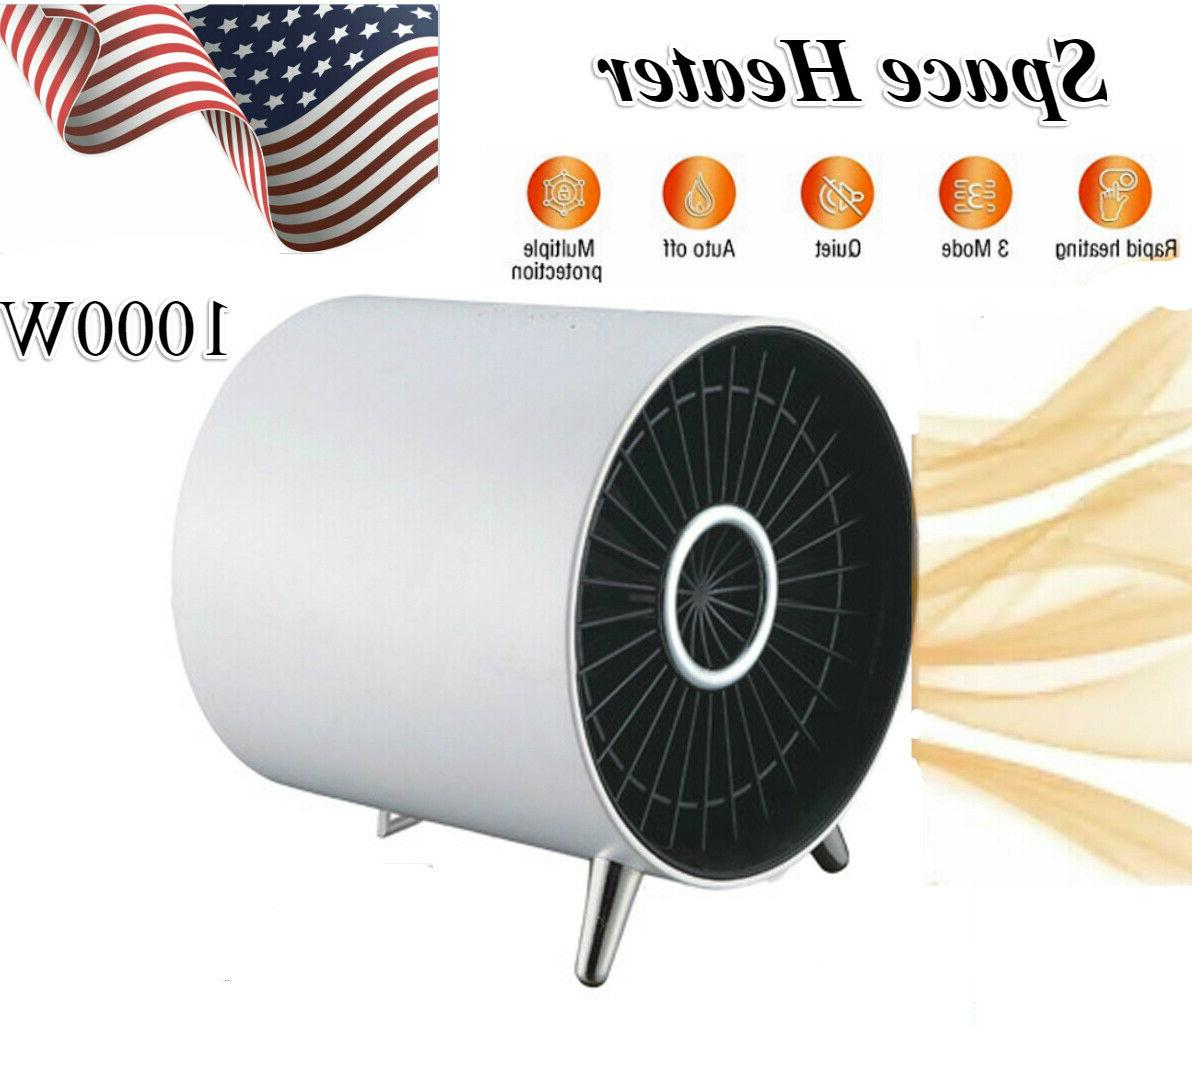 electric portable space heater 1000w indoor heater